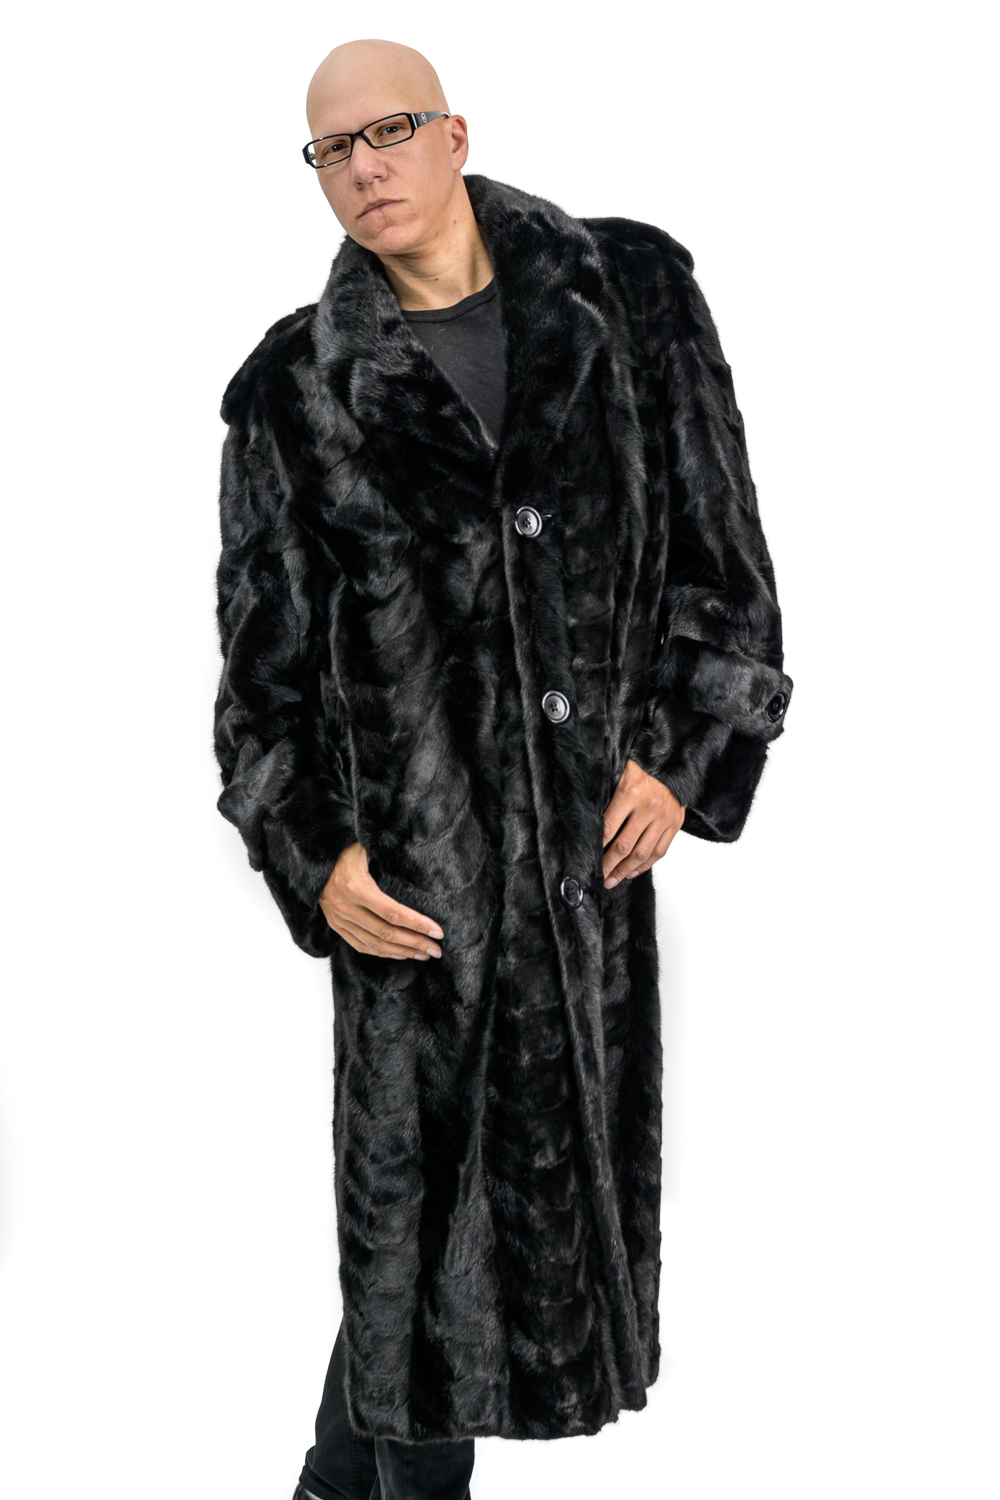 M6 2 Mans Mink Fur Coat